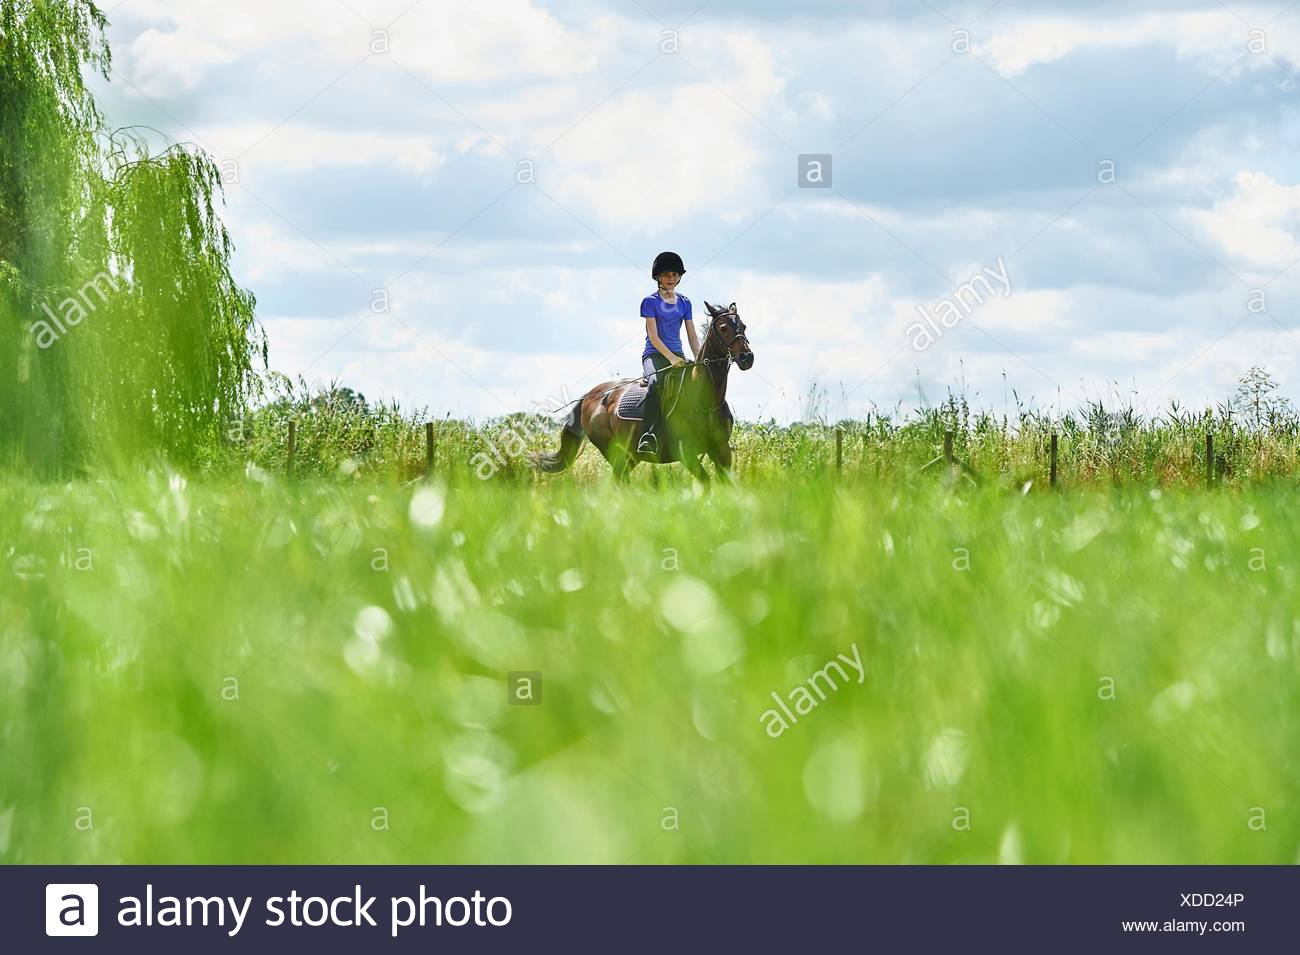 Surface level view of girl horse riding in field - Stock Image